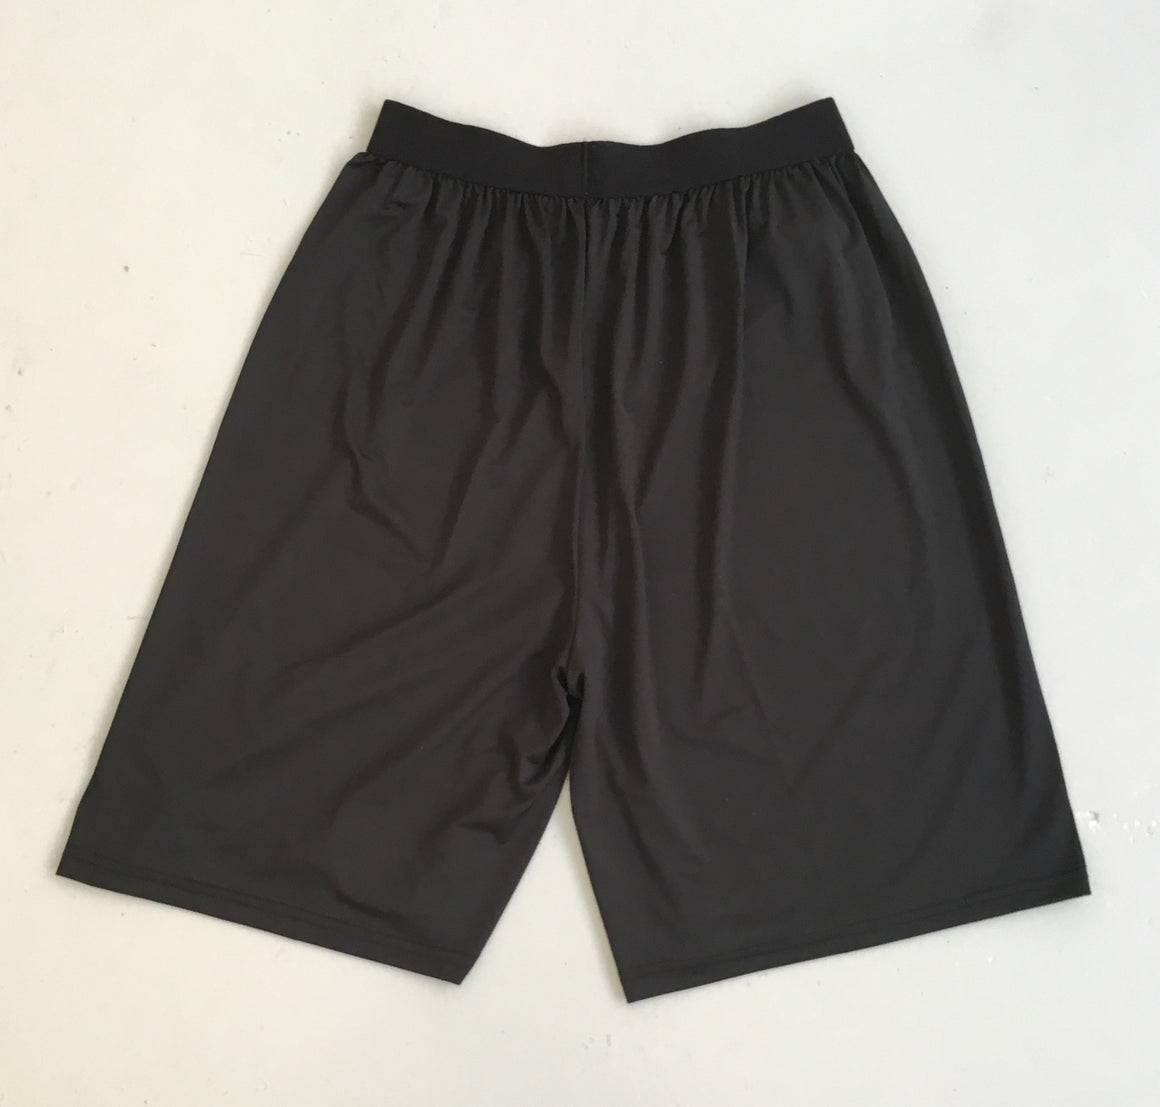 Taïga Ultimate Black Polyester Shorts